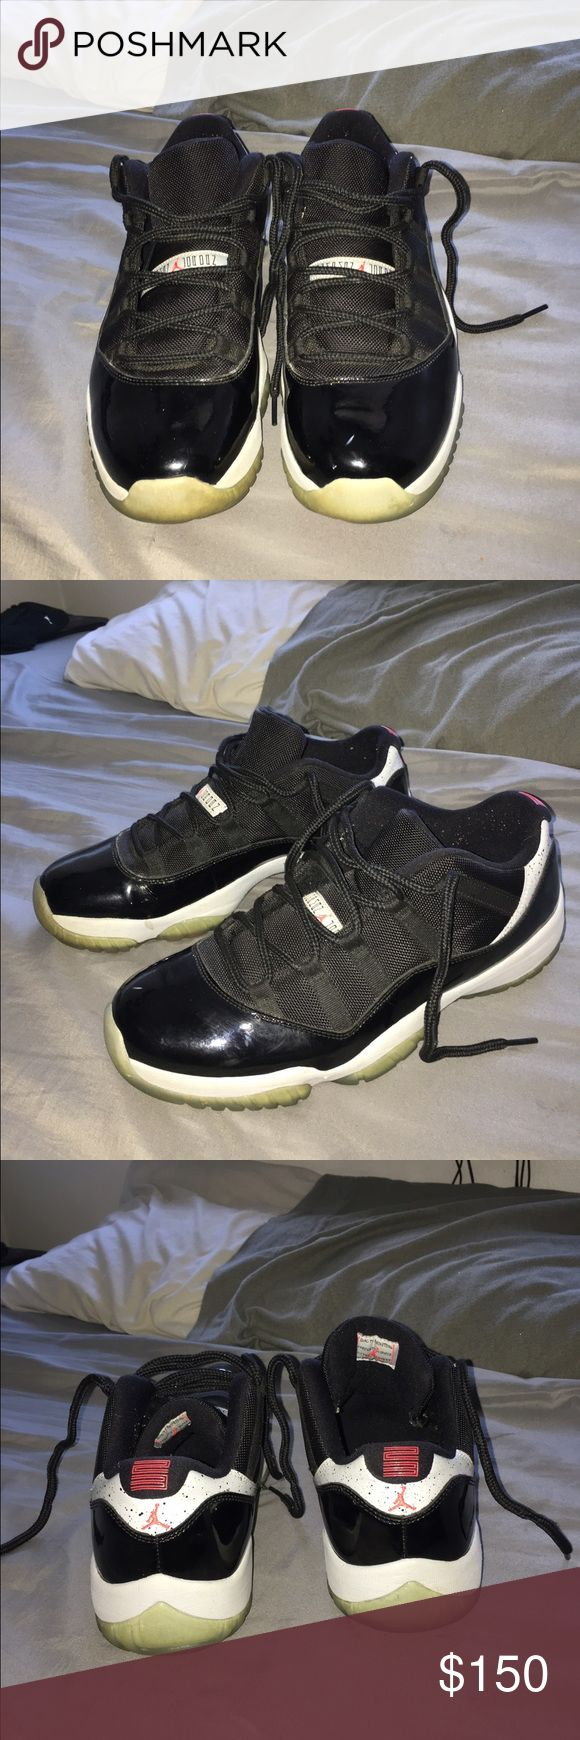 Jordan Retro 11 Low Infrared STILL AVAILABLE Shoes have started to yellow and there is one small mark on the front as seen in pic one and two. Besides that they are in great condition. Willing to negotiate Jordan Shoes Sneakers